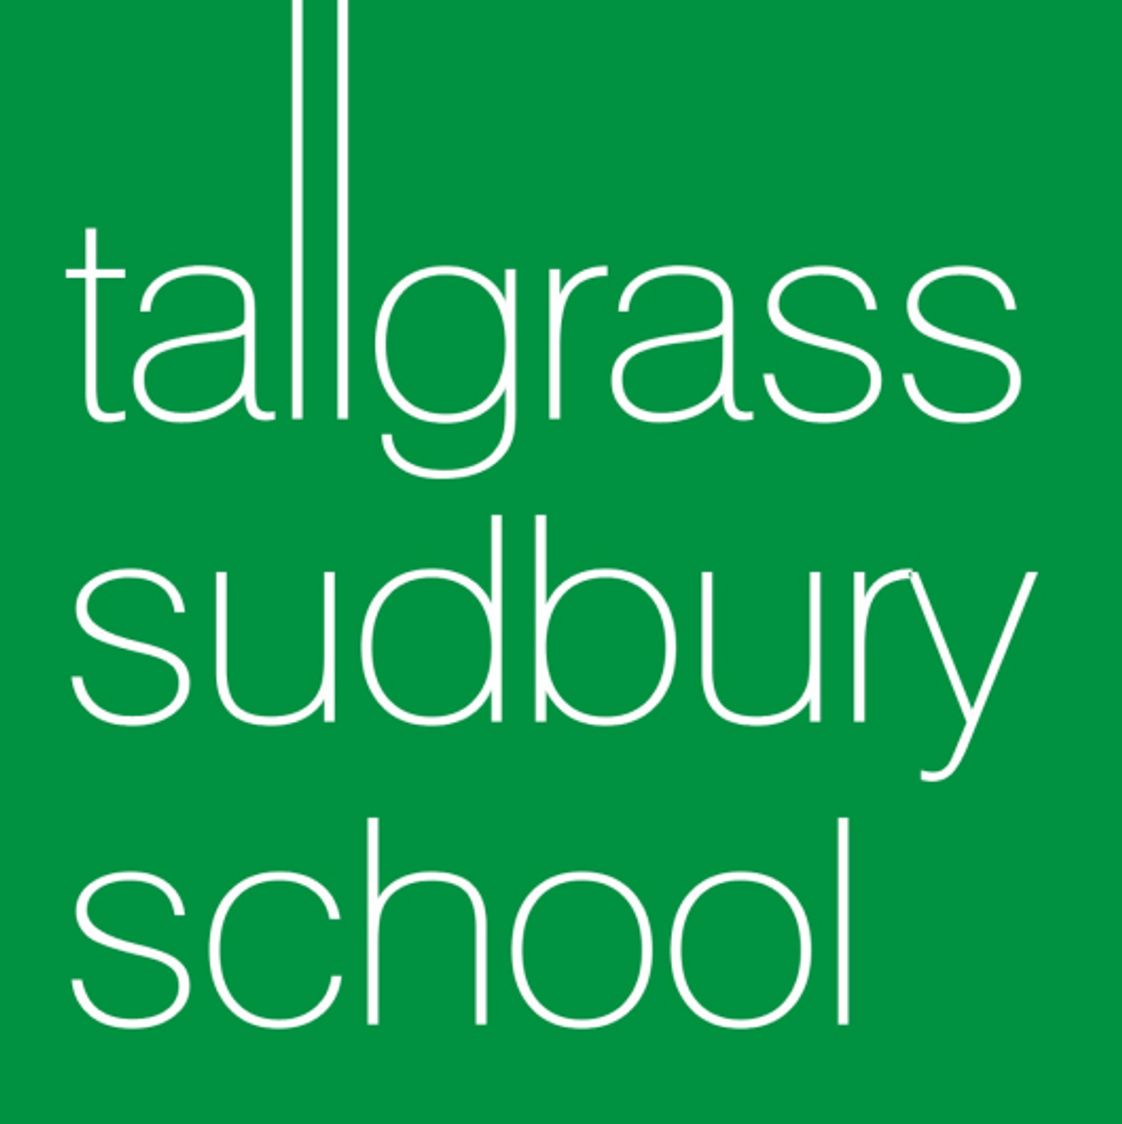 Tallgrass Sudbury School Photo